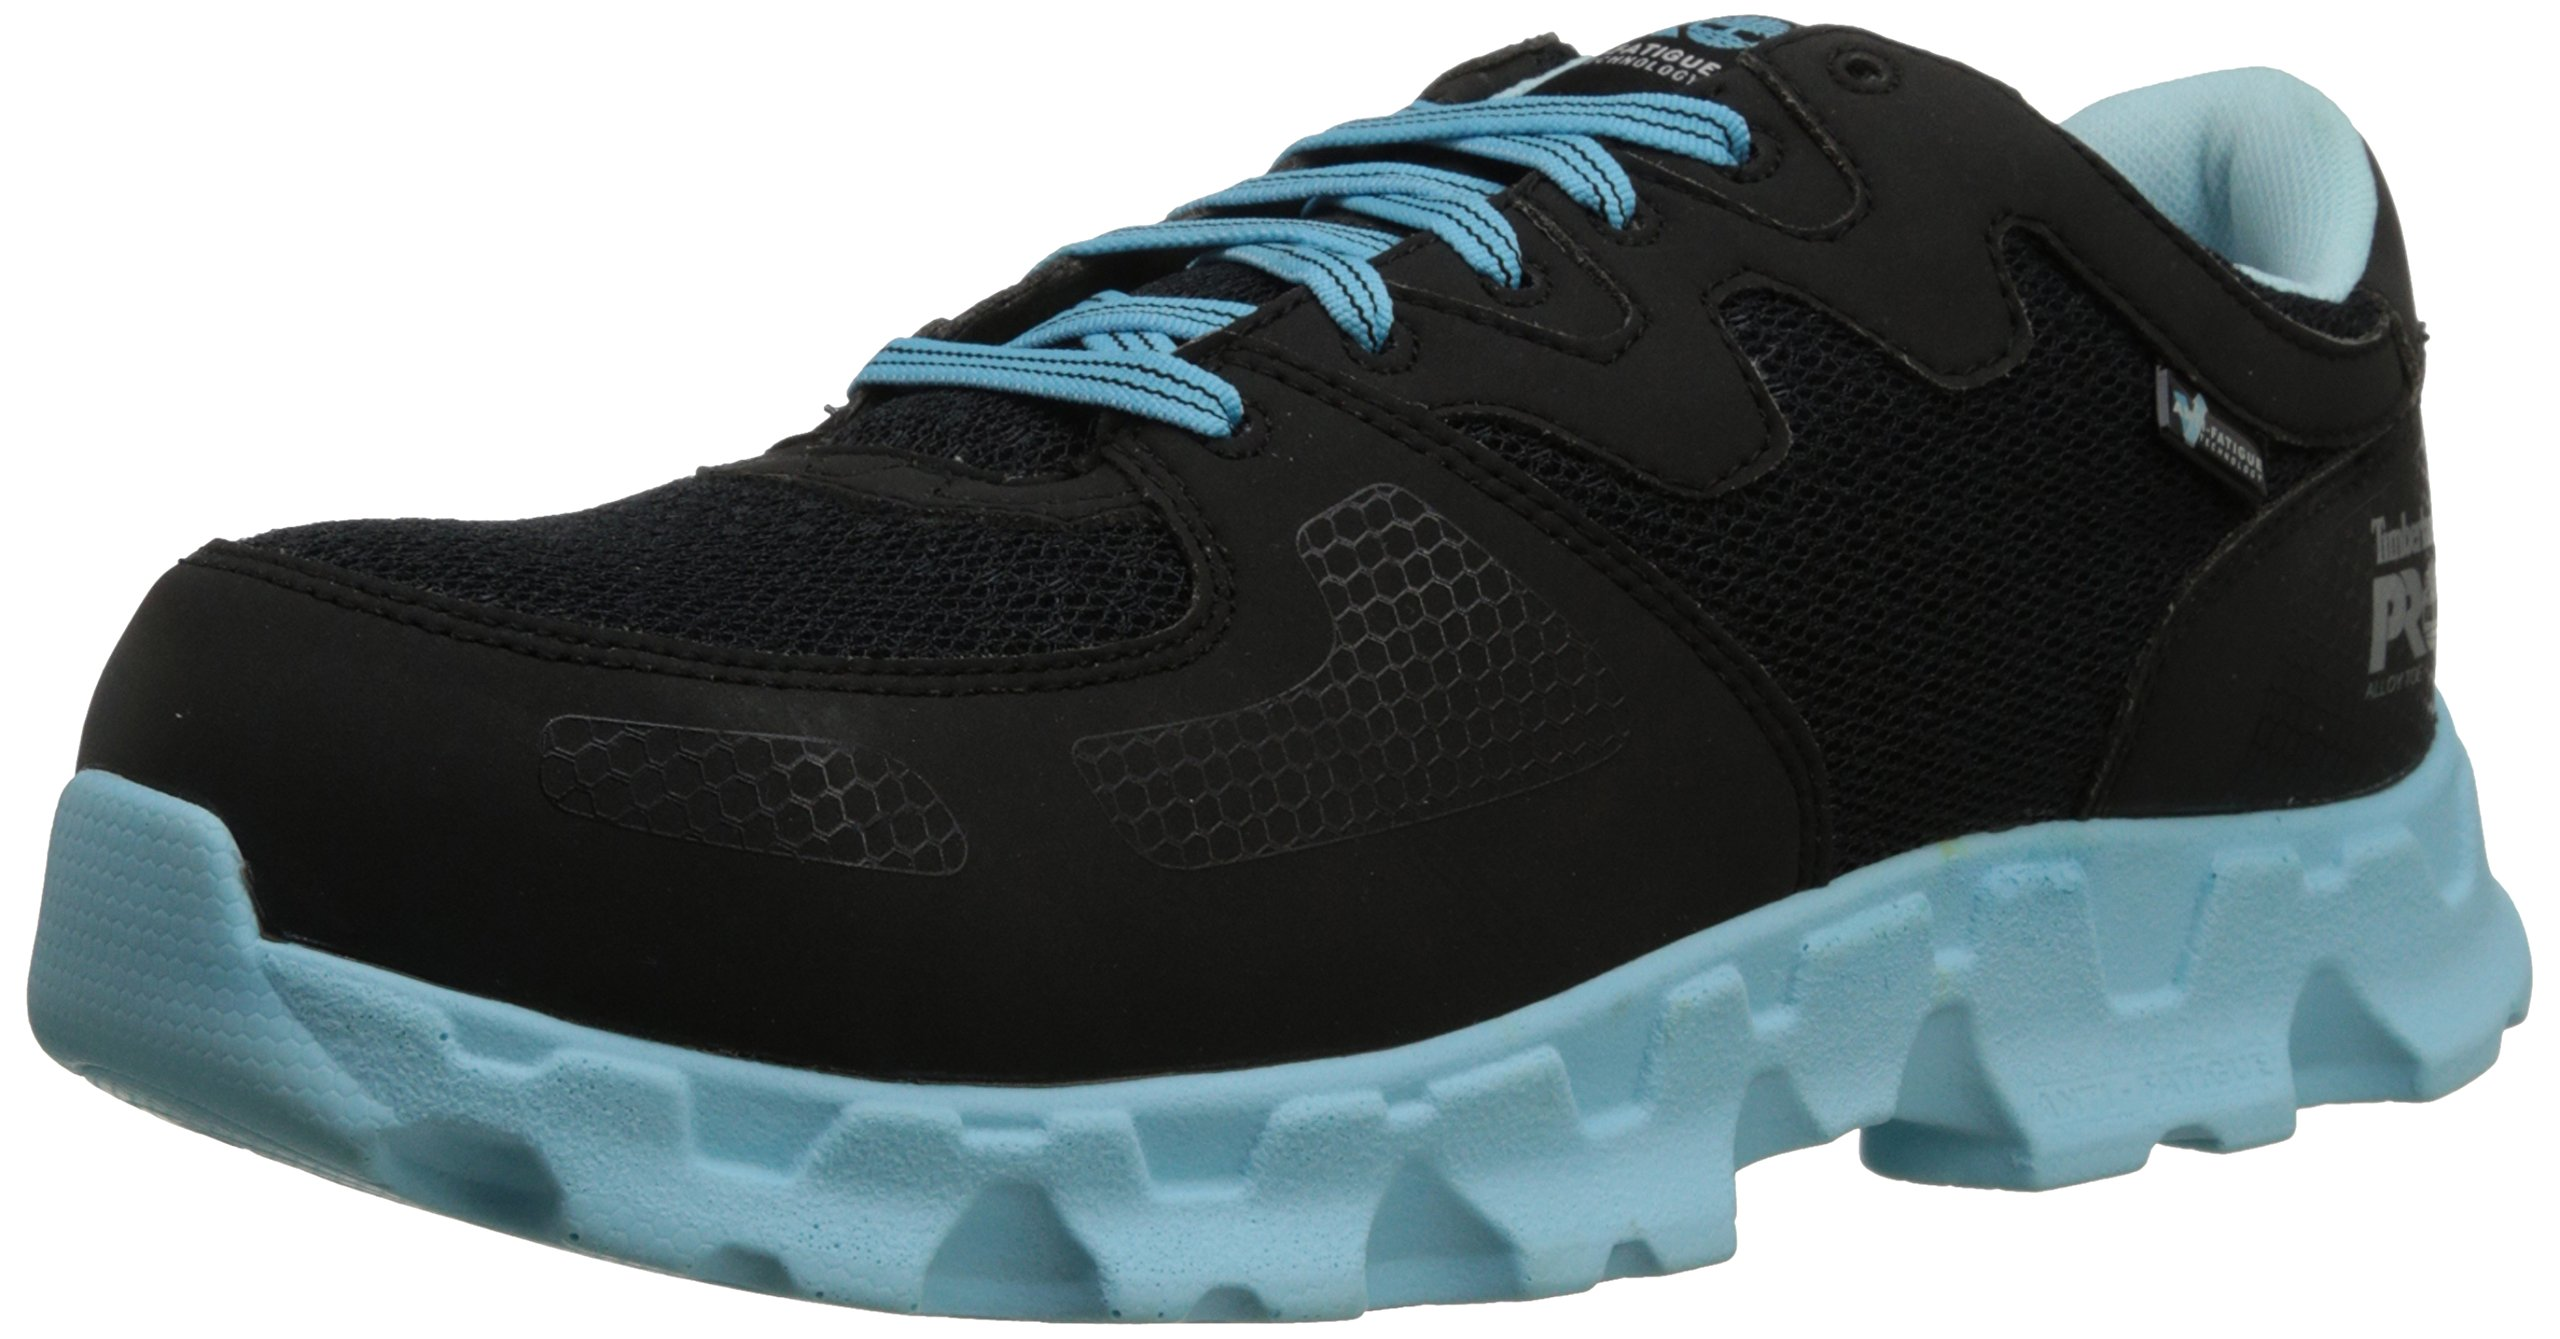 Timberland PRO Women's Powertrain Alloy Toe ESD W Industrial Shoe,Black/Blue Microfiber And Textile,9.5 M US